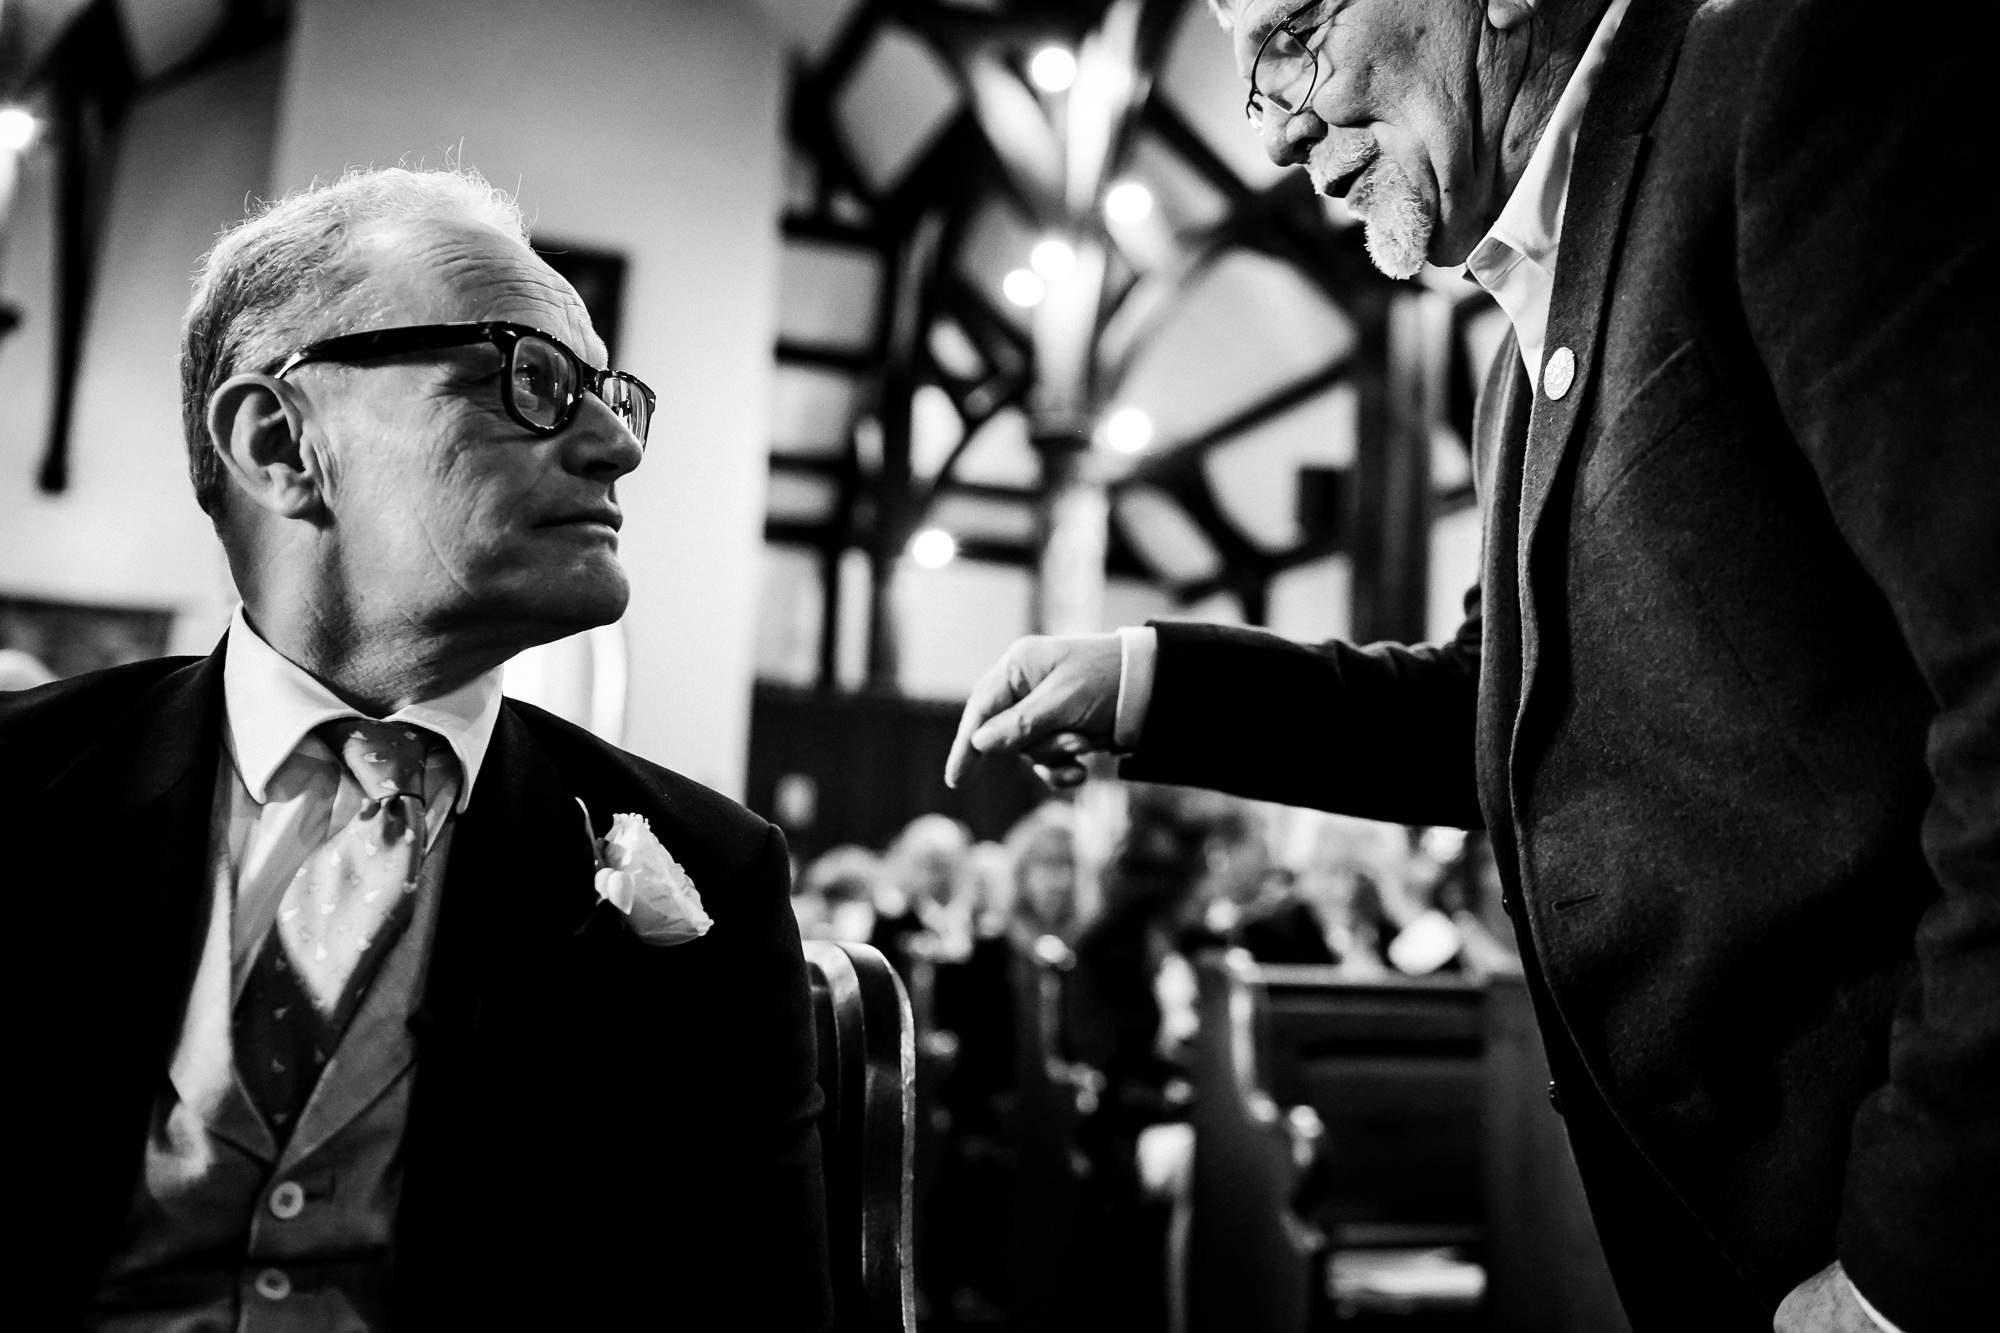 Cheshire wedding at home wedding photography (16 of 49).jpg